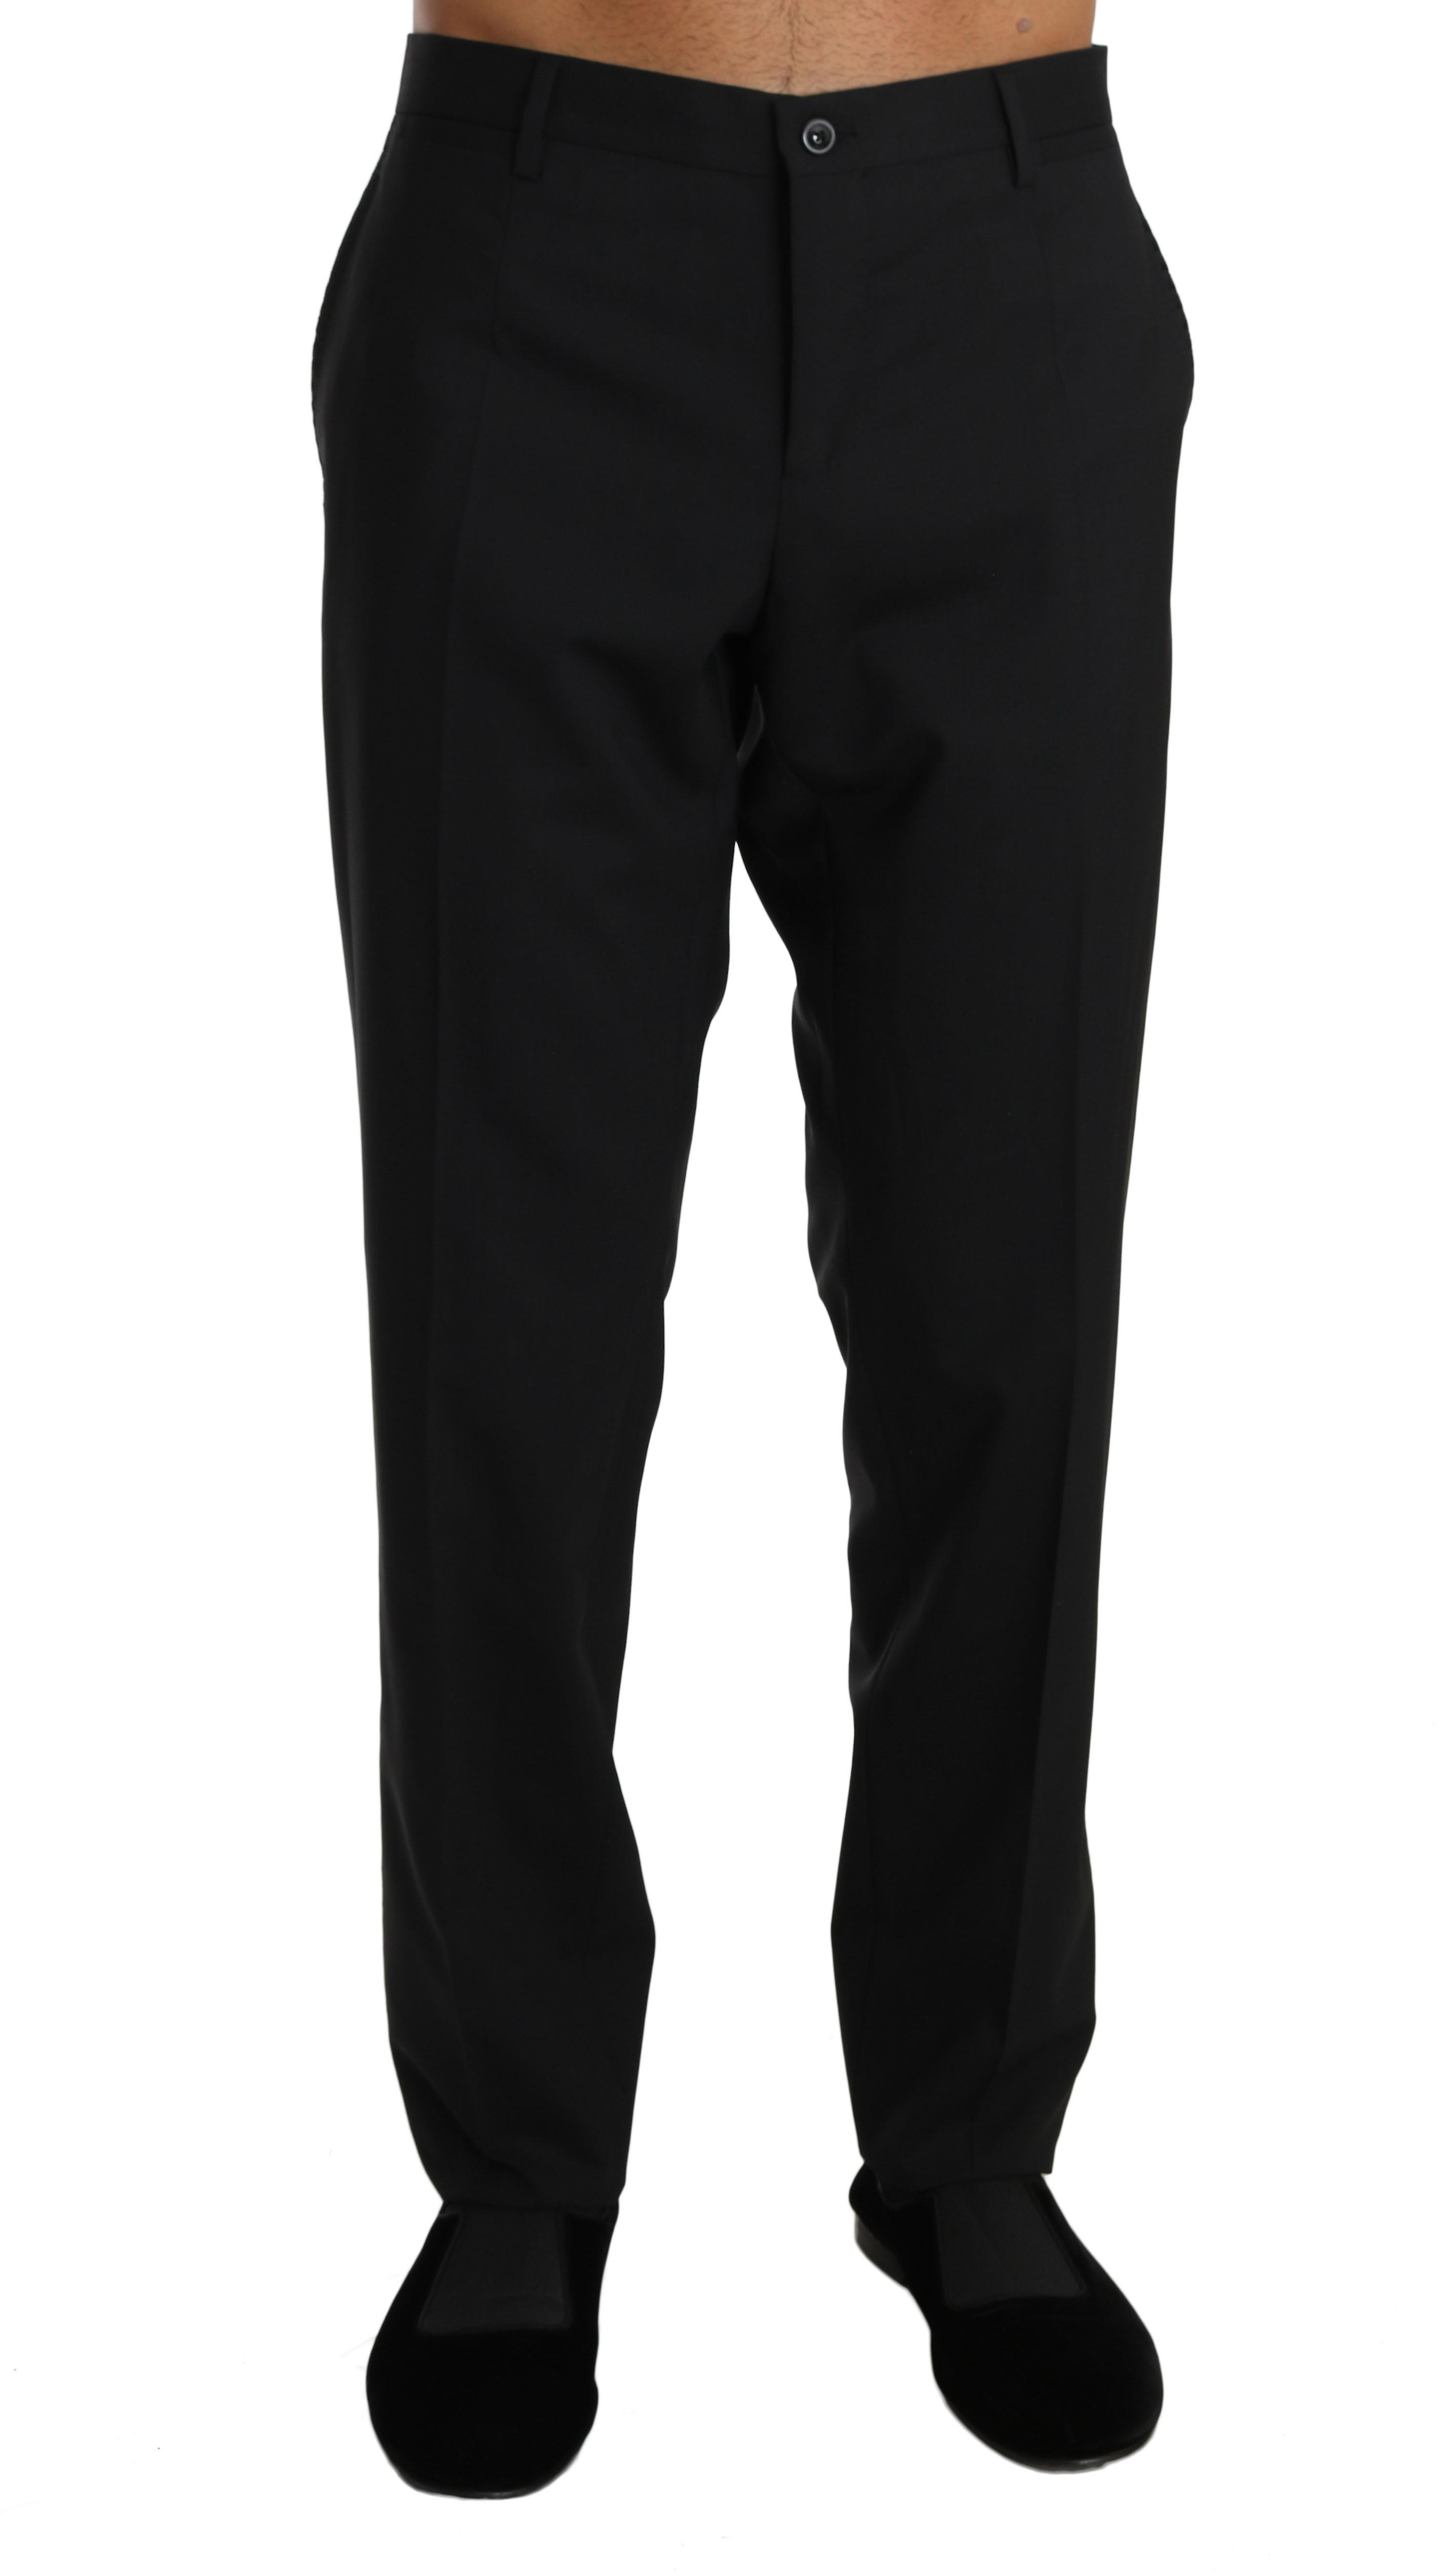 Black Wool Stretch Dress Formal Trousers